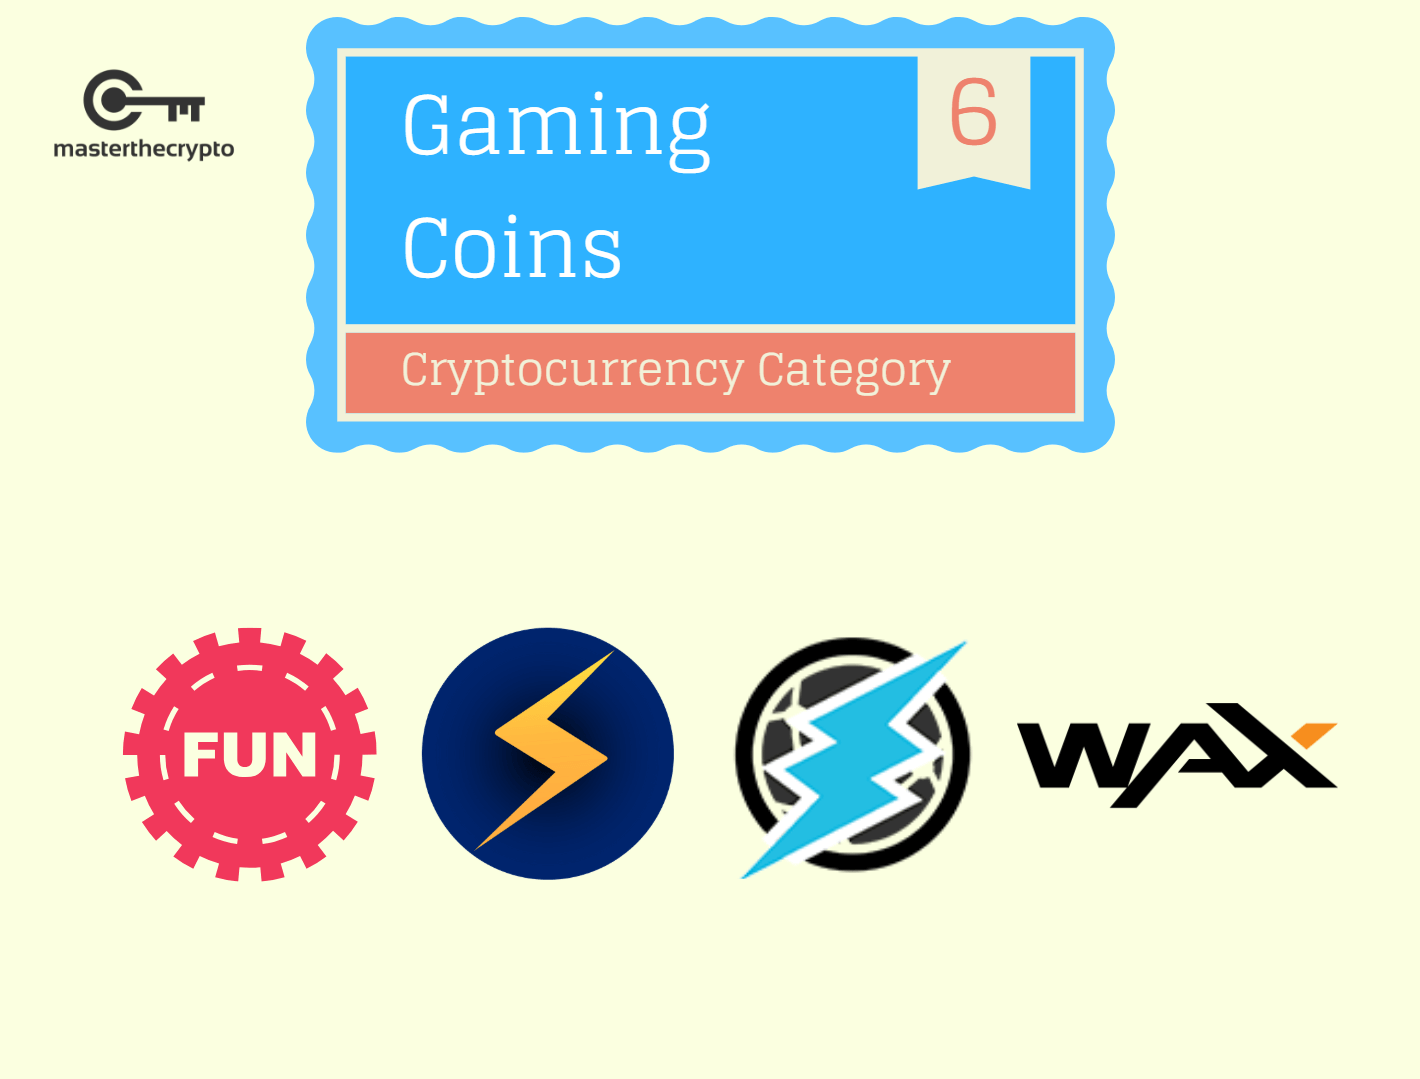 You are currently viewing Category of Cryptocurrency Market: Gaming Coins